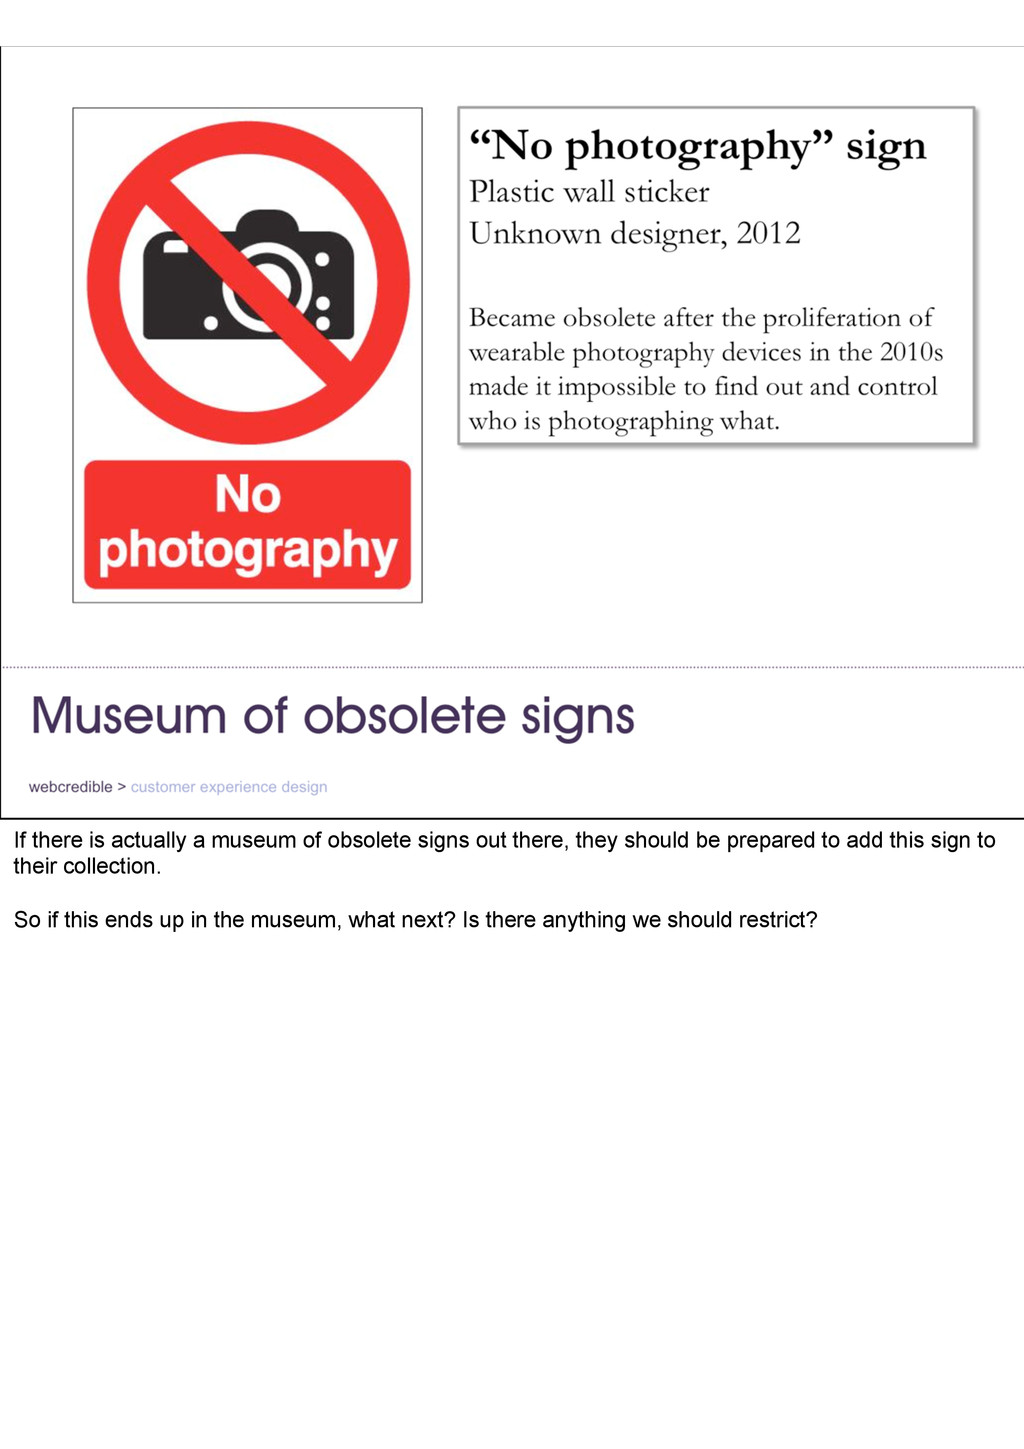 If there is actually a museum of obsolete signs...